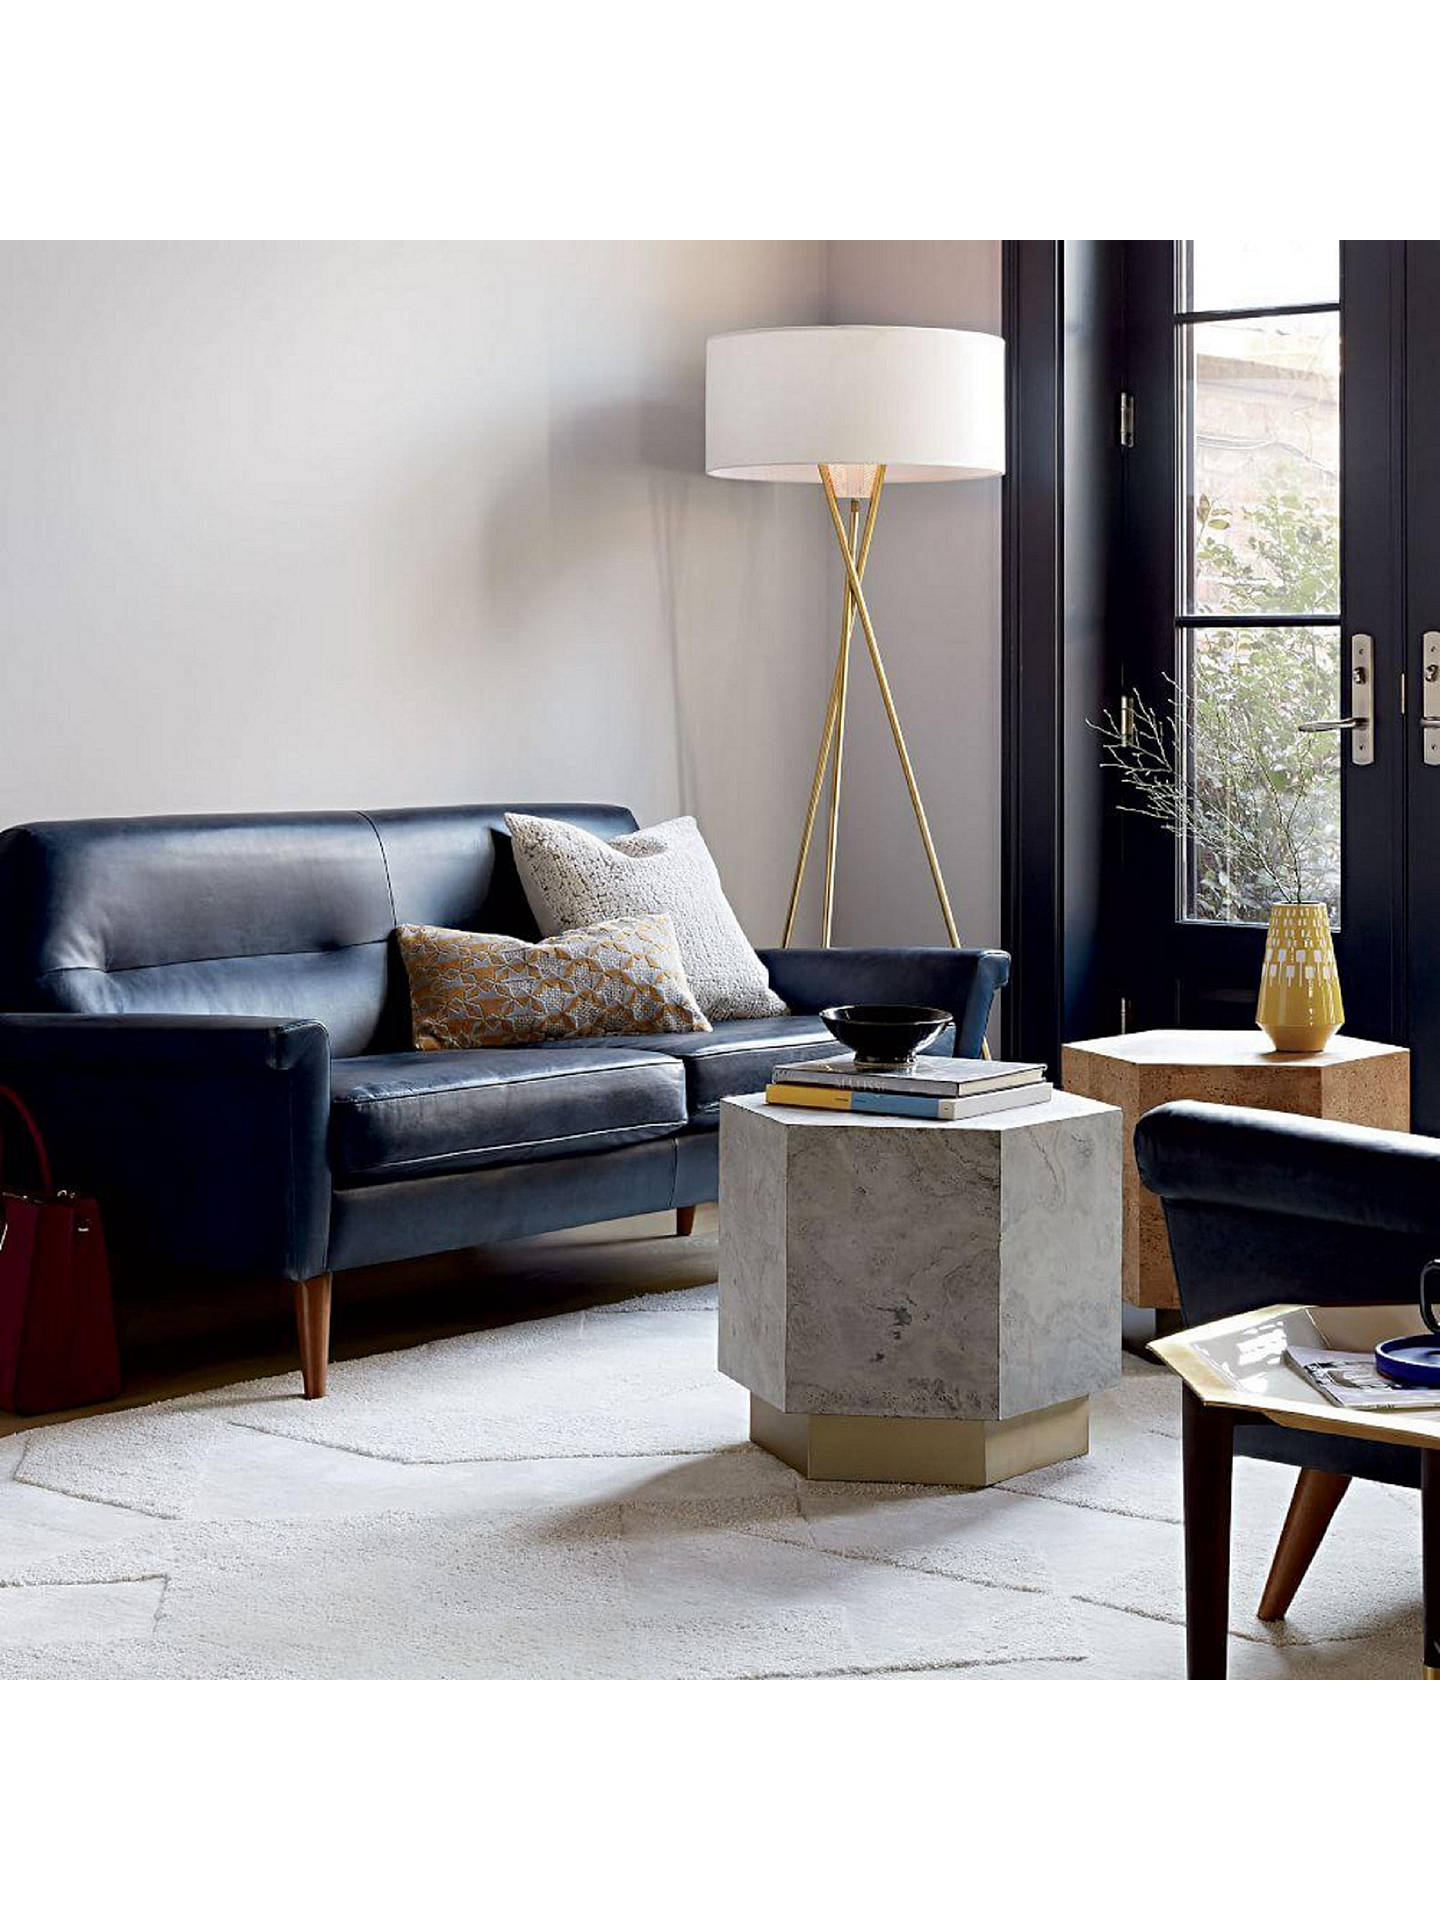 Marvelous West Elm Denmark Leather Loveseat Navy At John Lewis Partners Unemploymentrelief Wooden Chair Designs For Living Room Unemploymentrelieforg